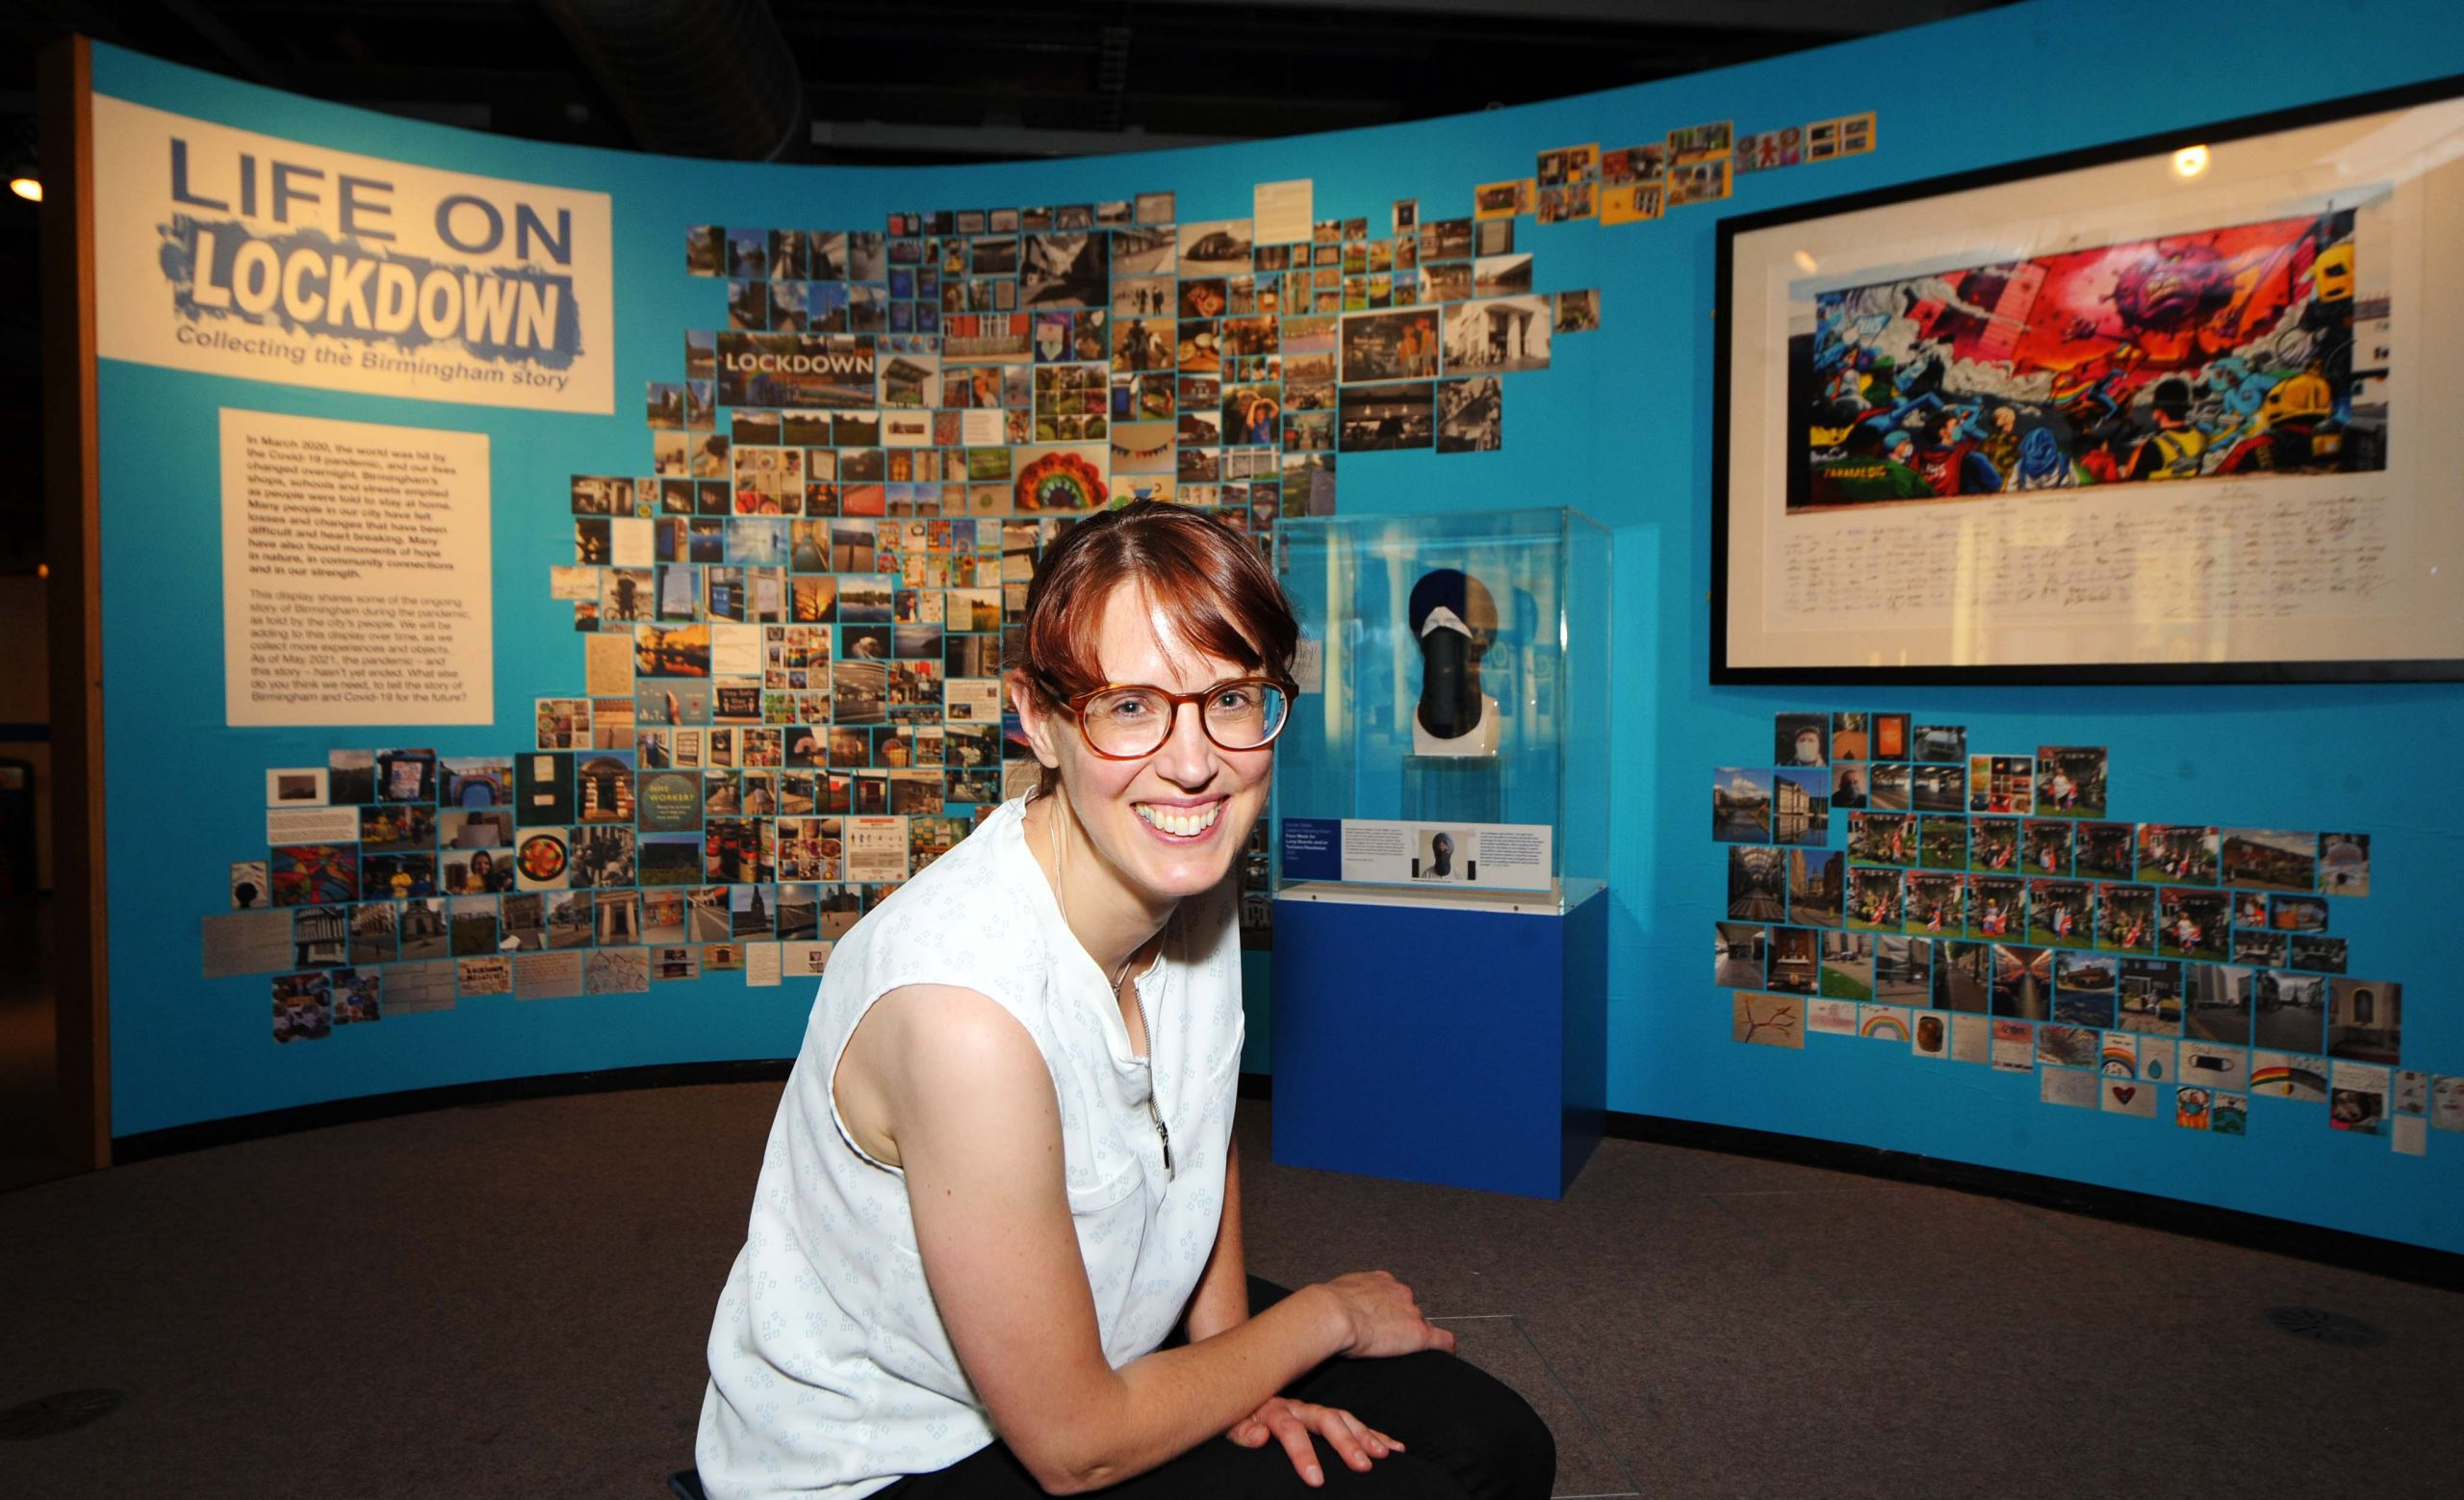 Rosie Barker, Birmingham Museums with Life on Lockdown display_photo credit Emma Trimble_2